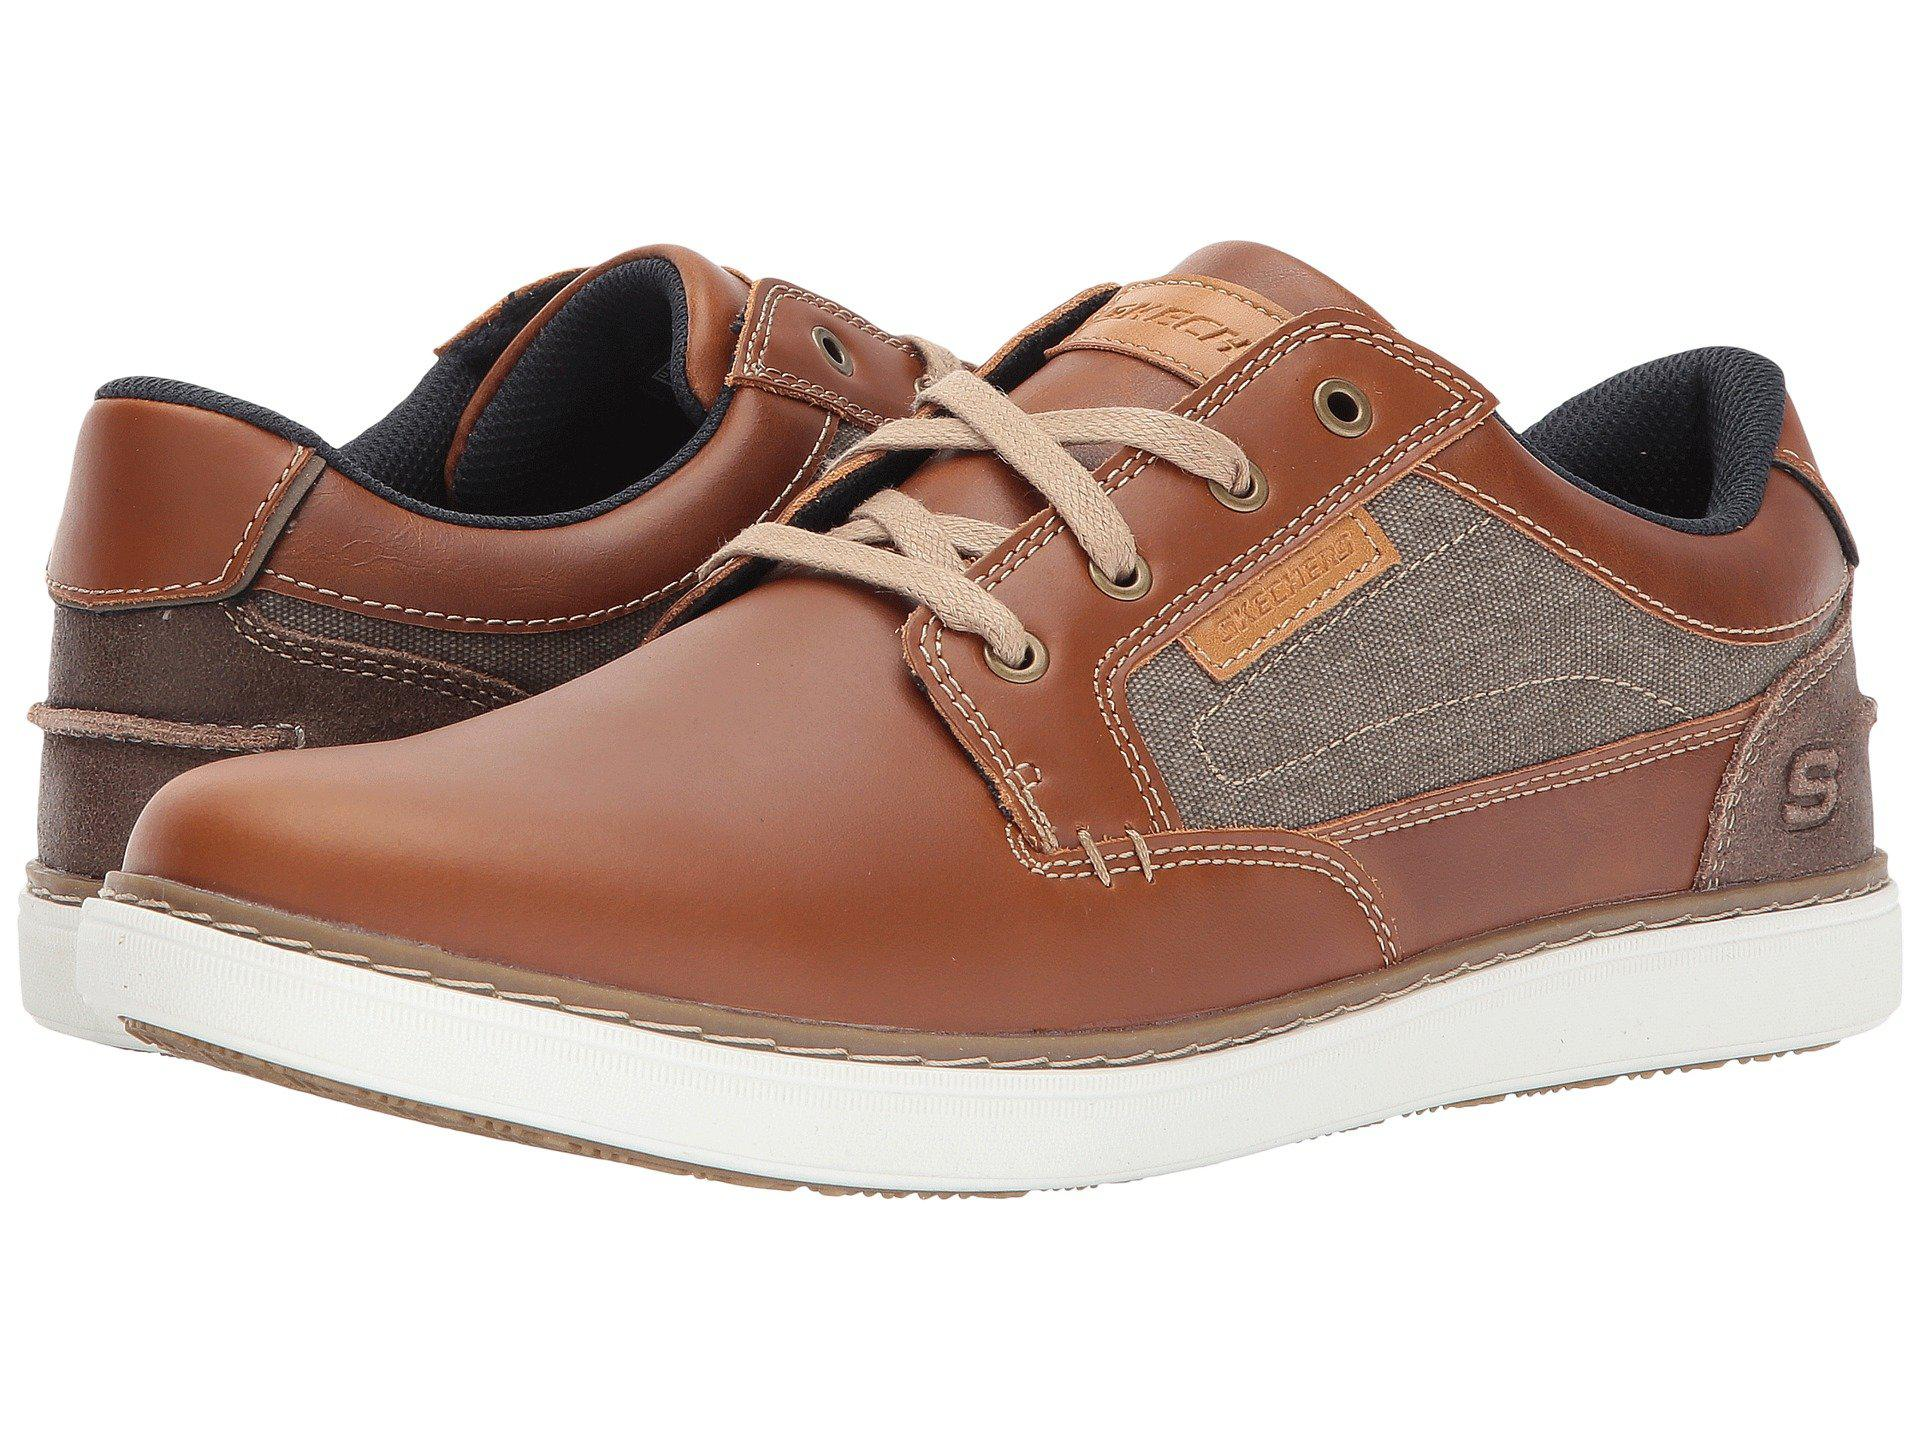 f54173d3012f Lyst - Skechers Lanson - Reldon in Brown for Men